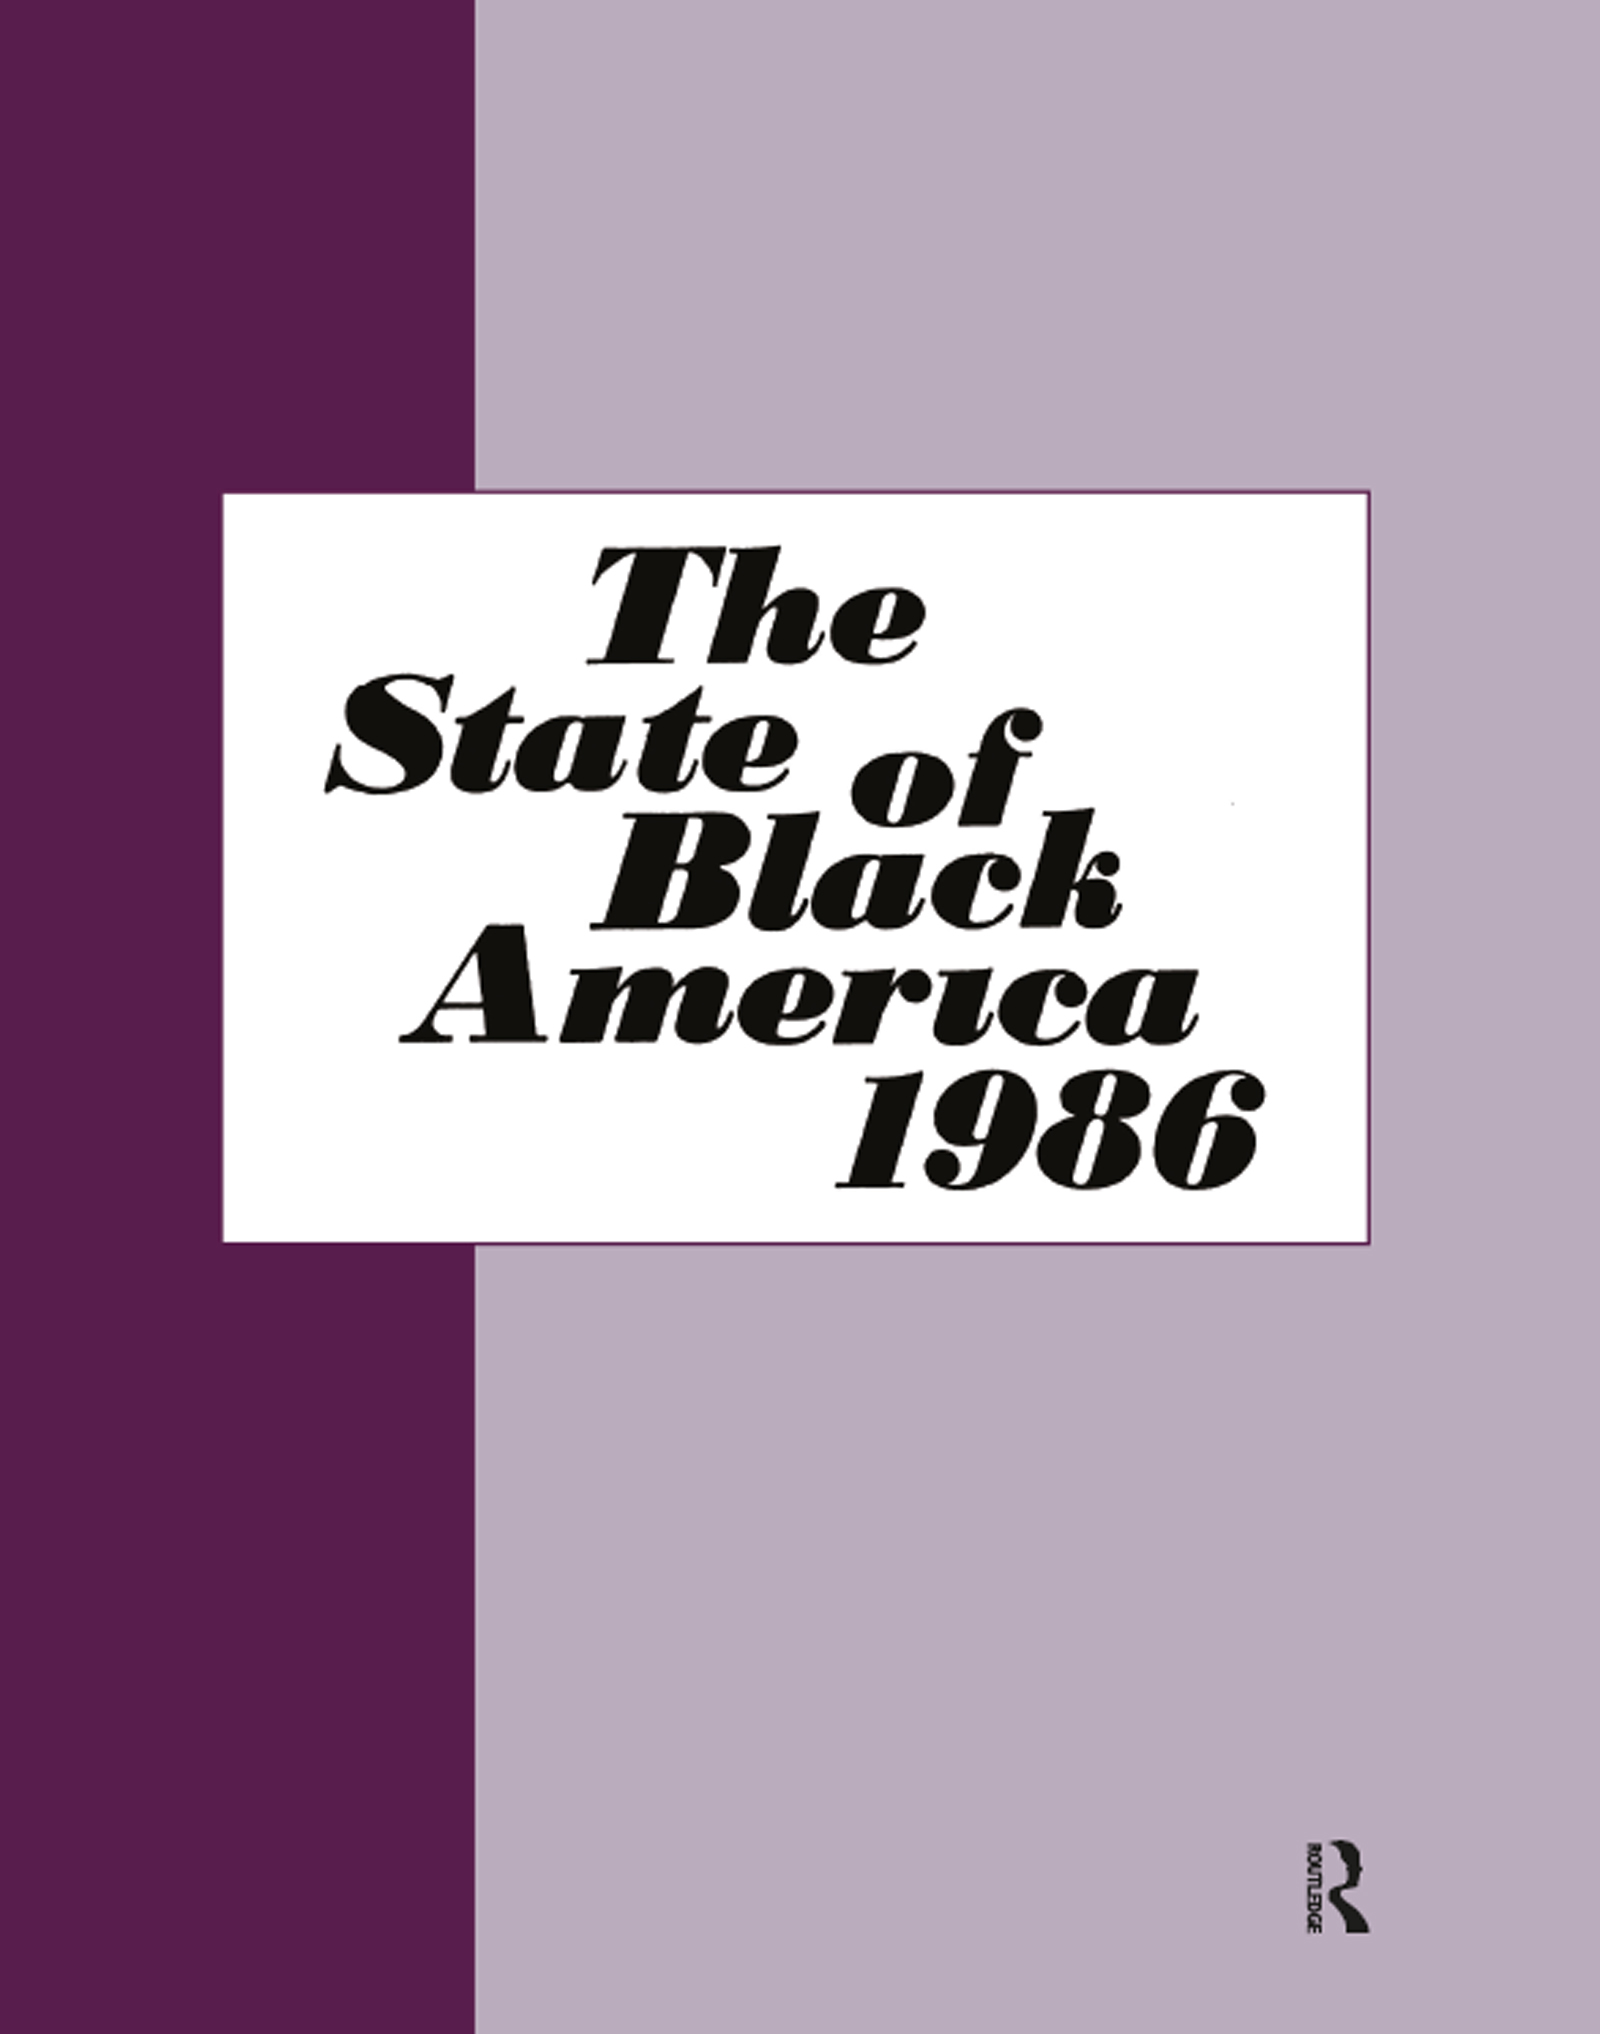 State of Black America - 1986